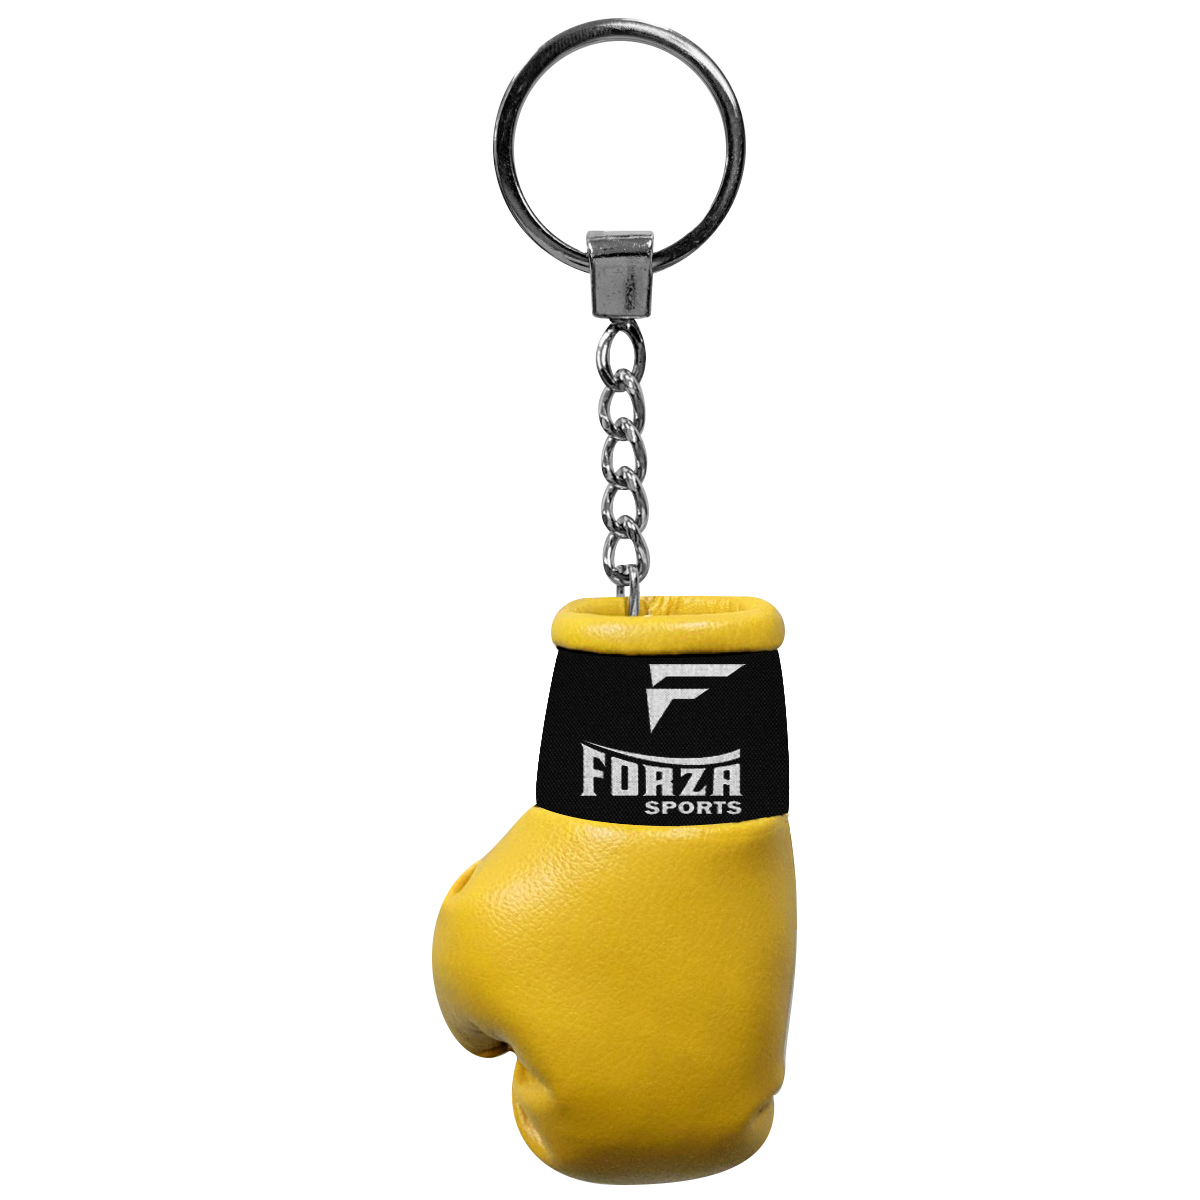 Cleto-Reyes-Traditional-Lace-Up-Boxing-Gloves-with-Forza-Handwraps-and-Keychain thumbnail 11